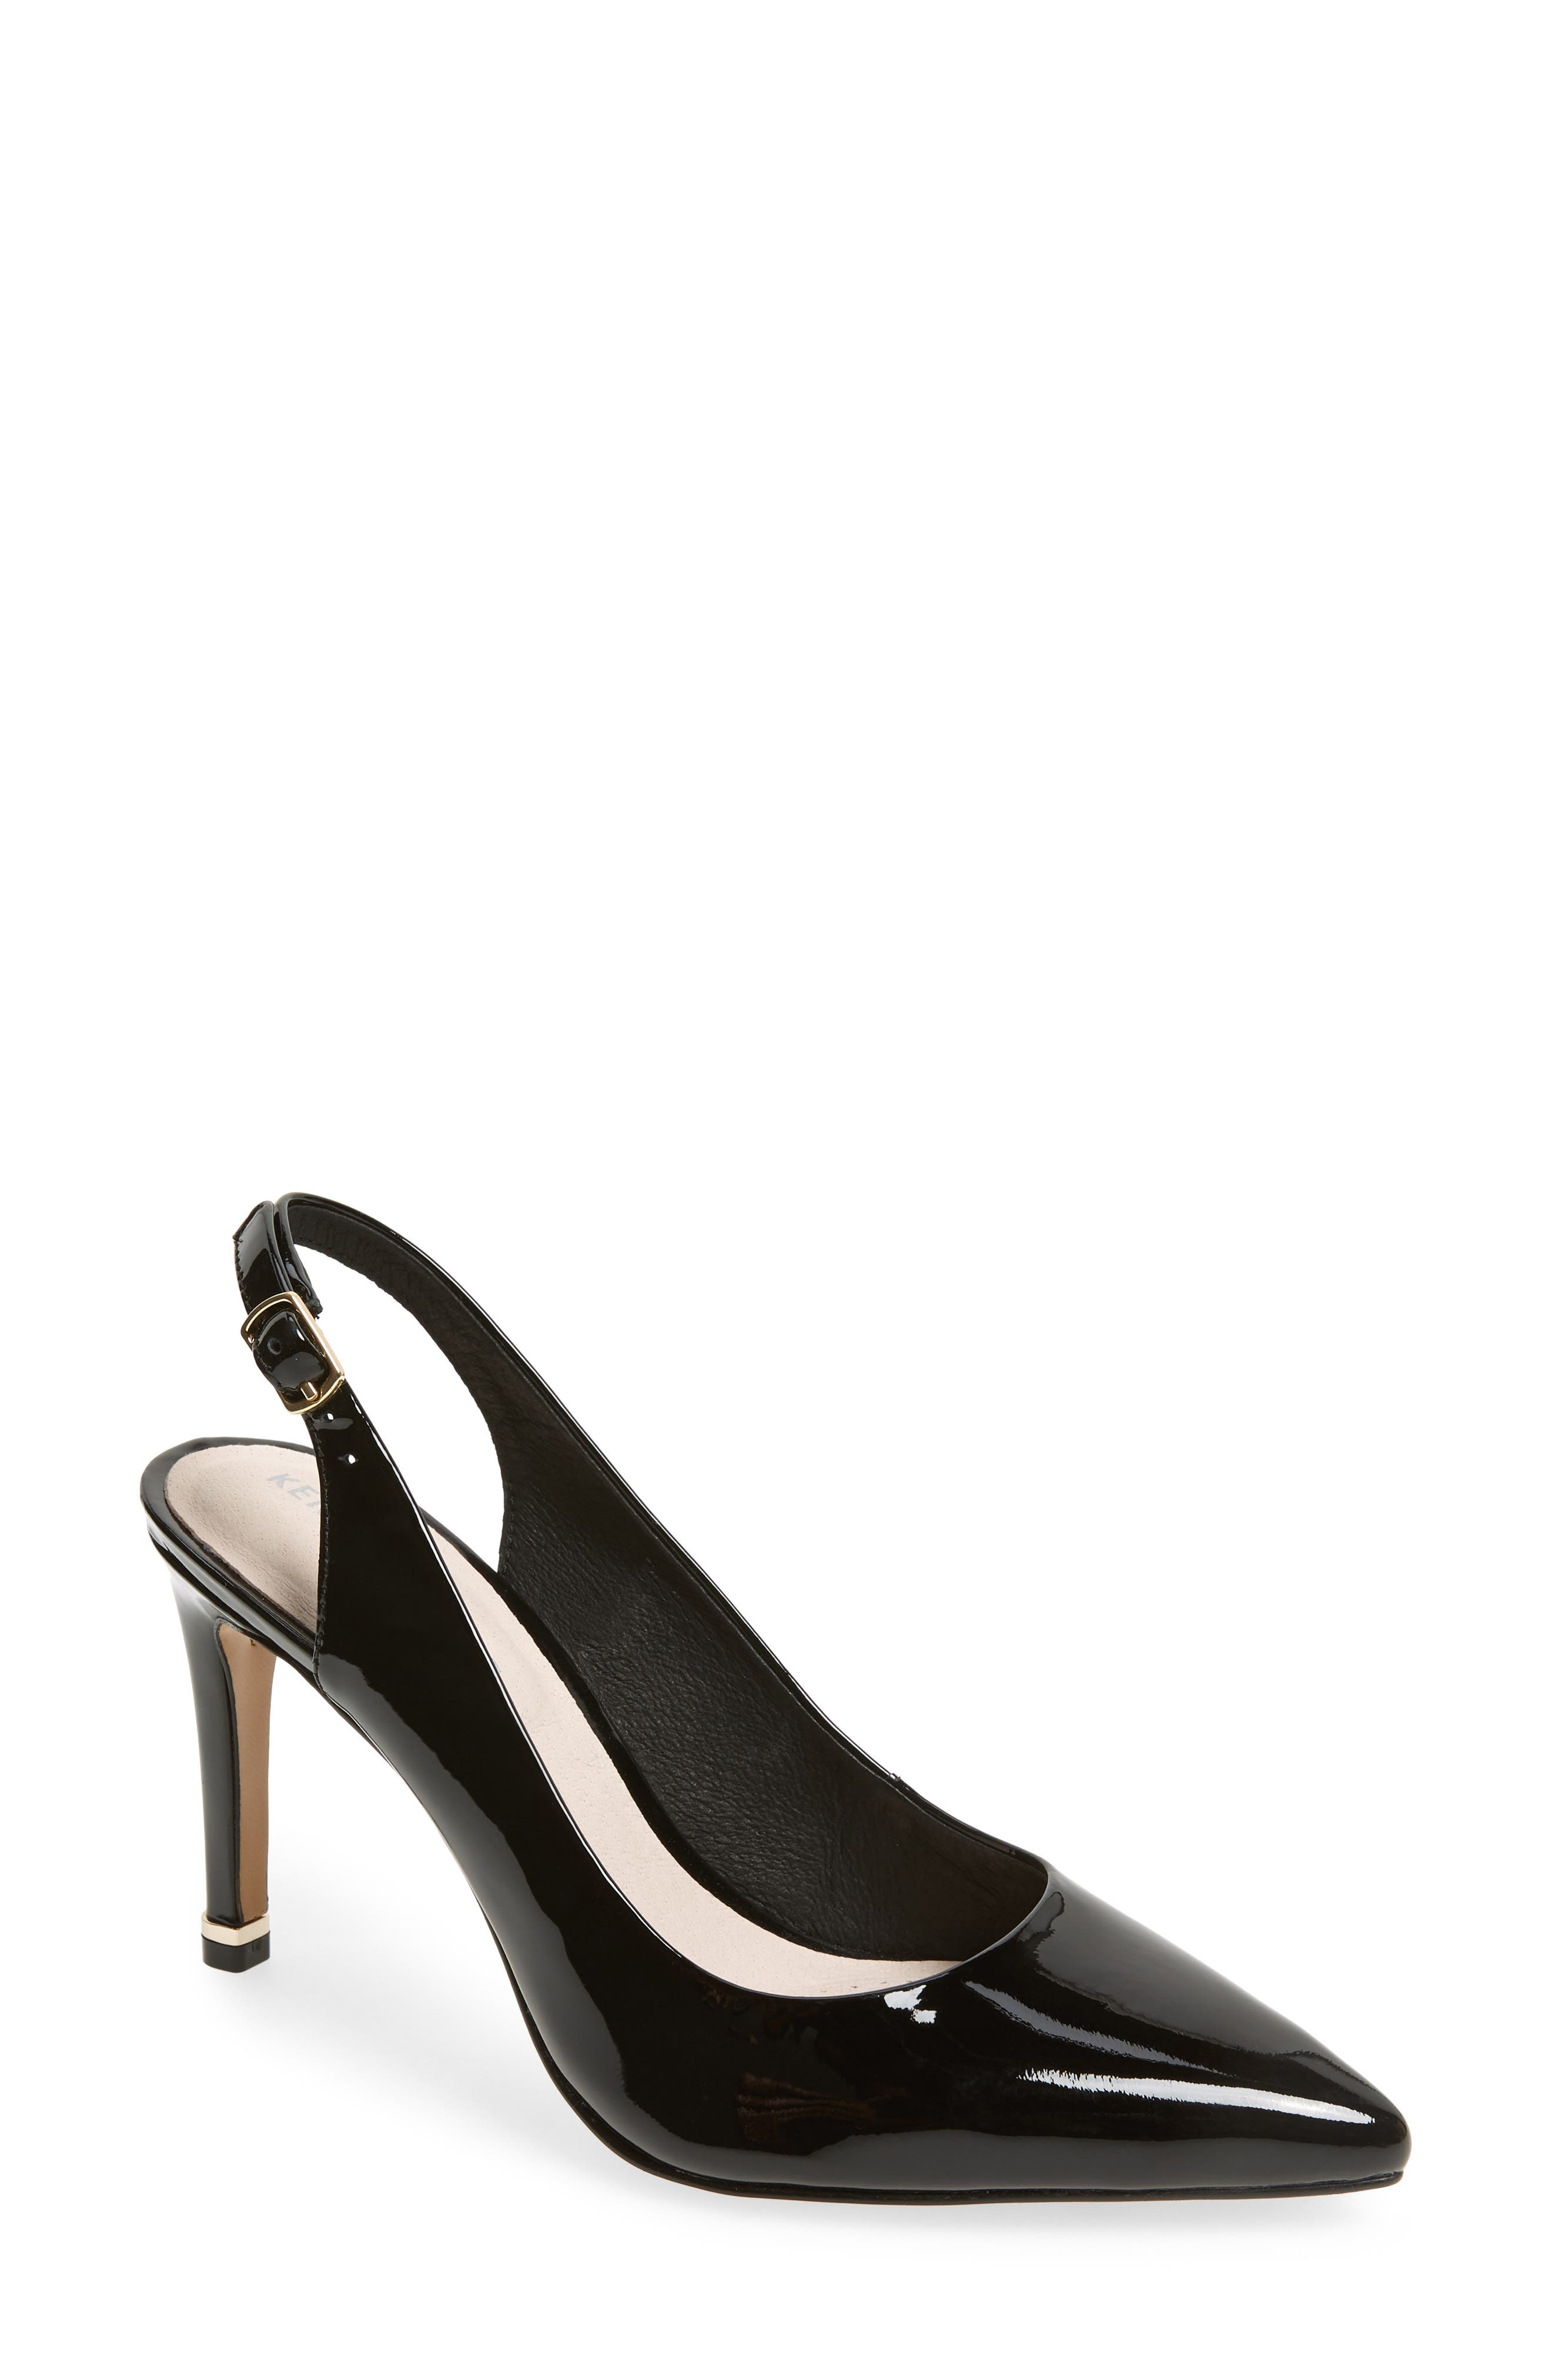 KENNETH COLE NEW YORK,                             Riley 85 Slingback Pump,                             Main thumbnail 1, color,                             BLACK PATENT LEATHER